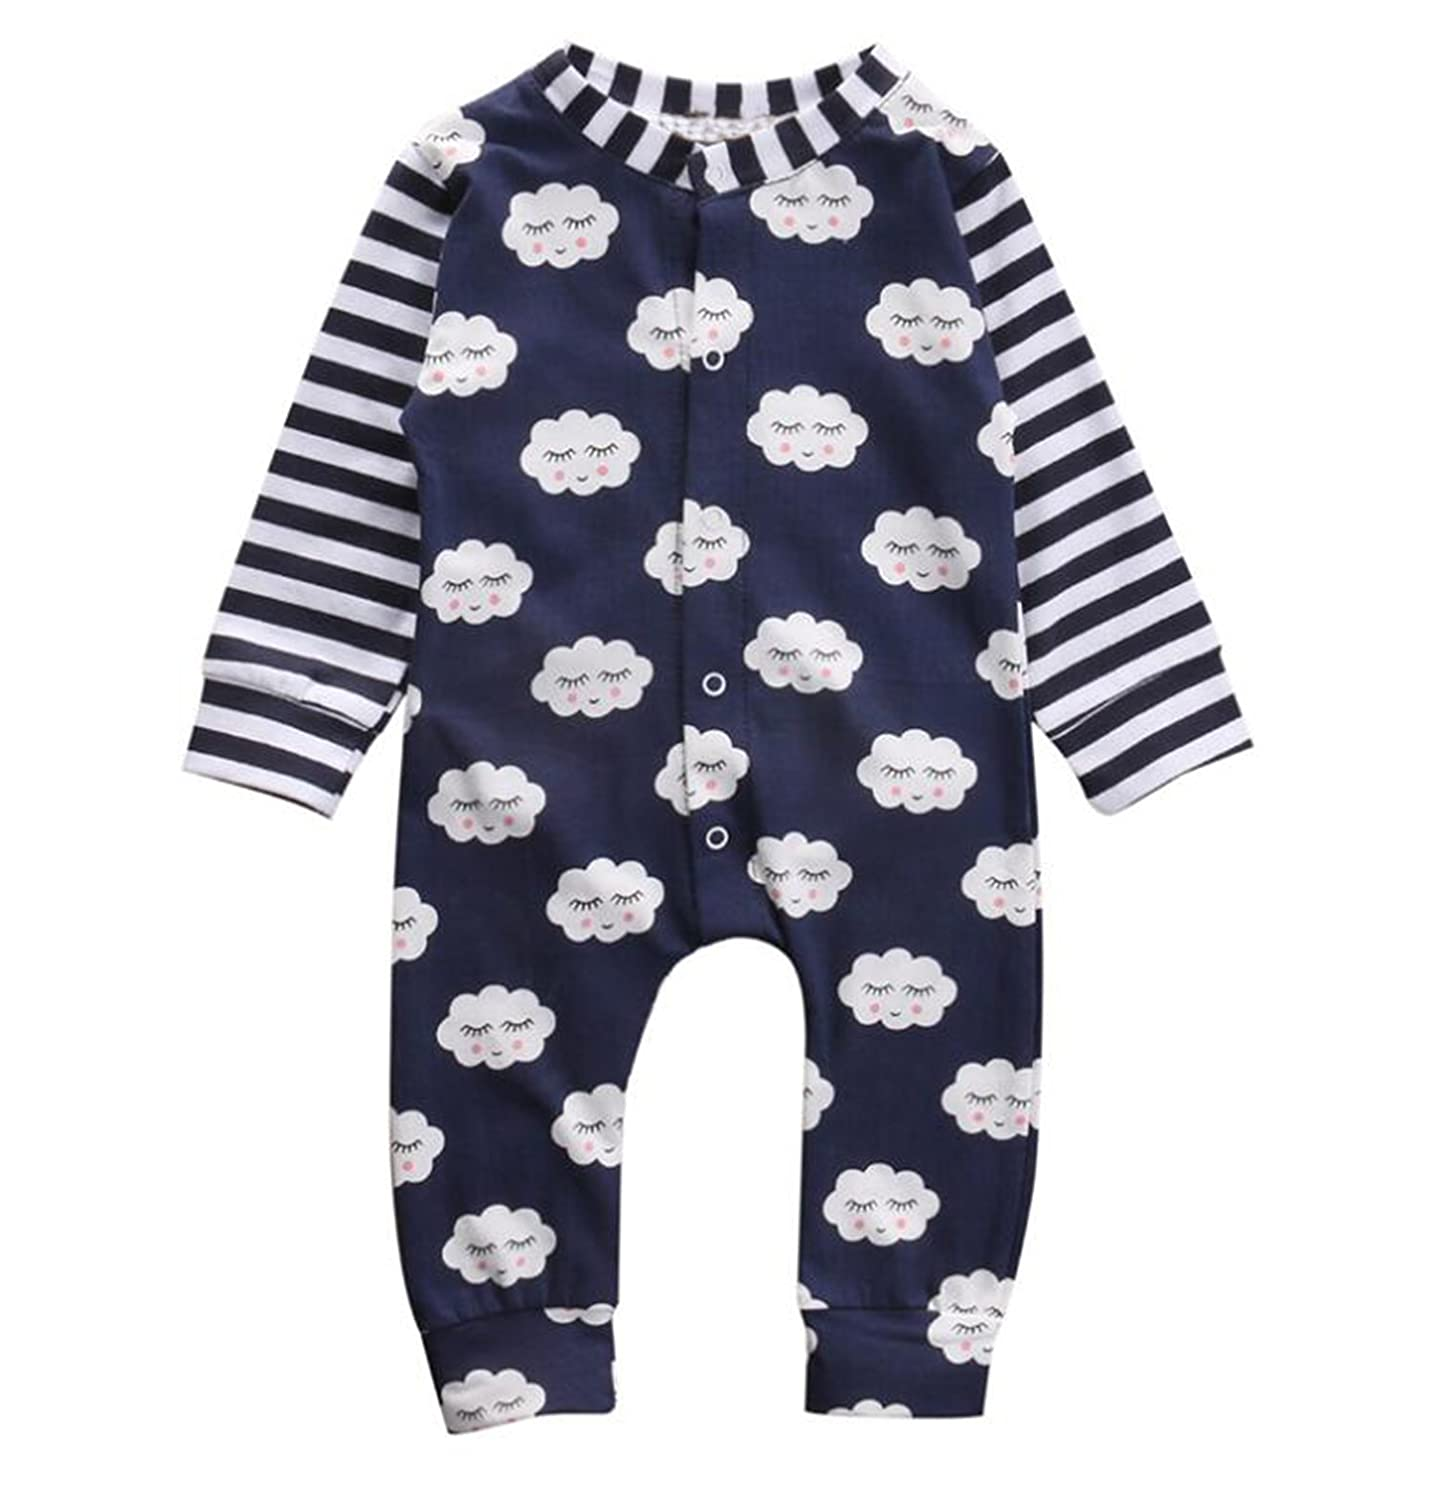 Baby Boys Girls Toddler Long Sleeve Cute Cloud Pattern Romper Jumpsuit Climb Clothes